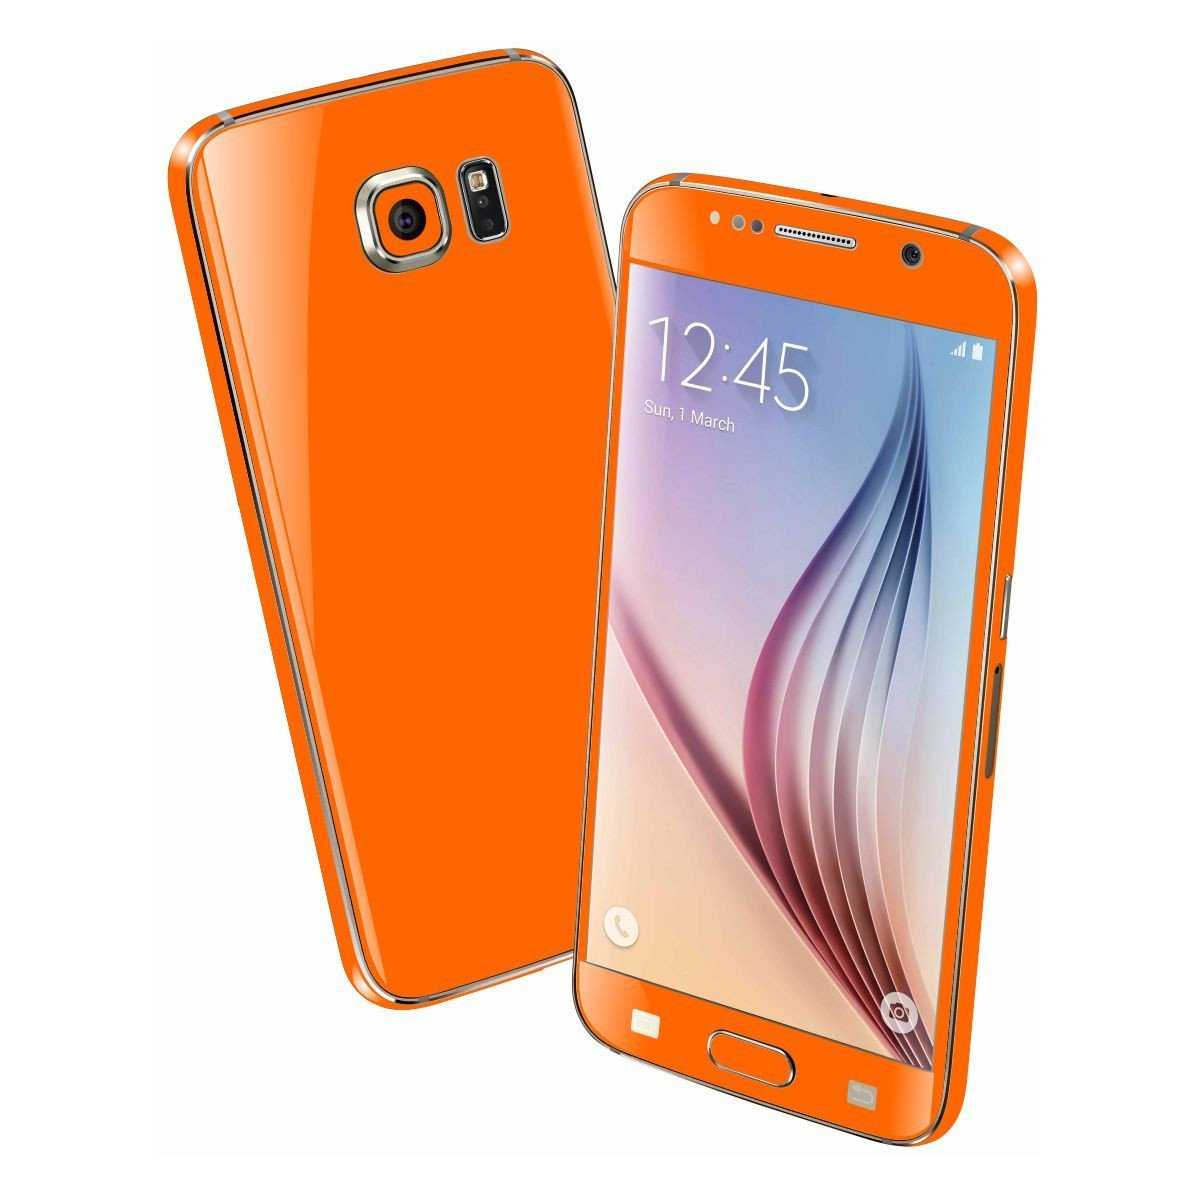 Samsung Galaxy S6 Colorful GLOSS GLOSSY Orange Skin Wrap Sticker Cover Protector Decal by EasySkinz